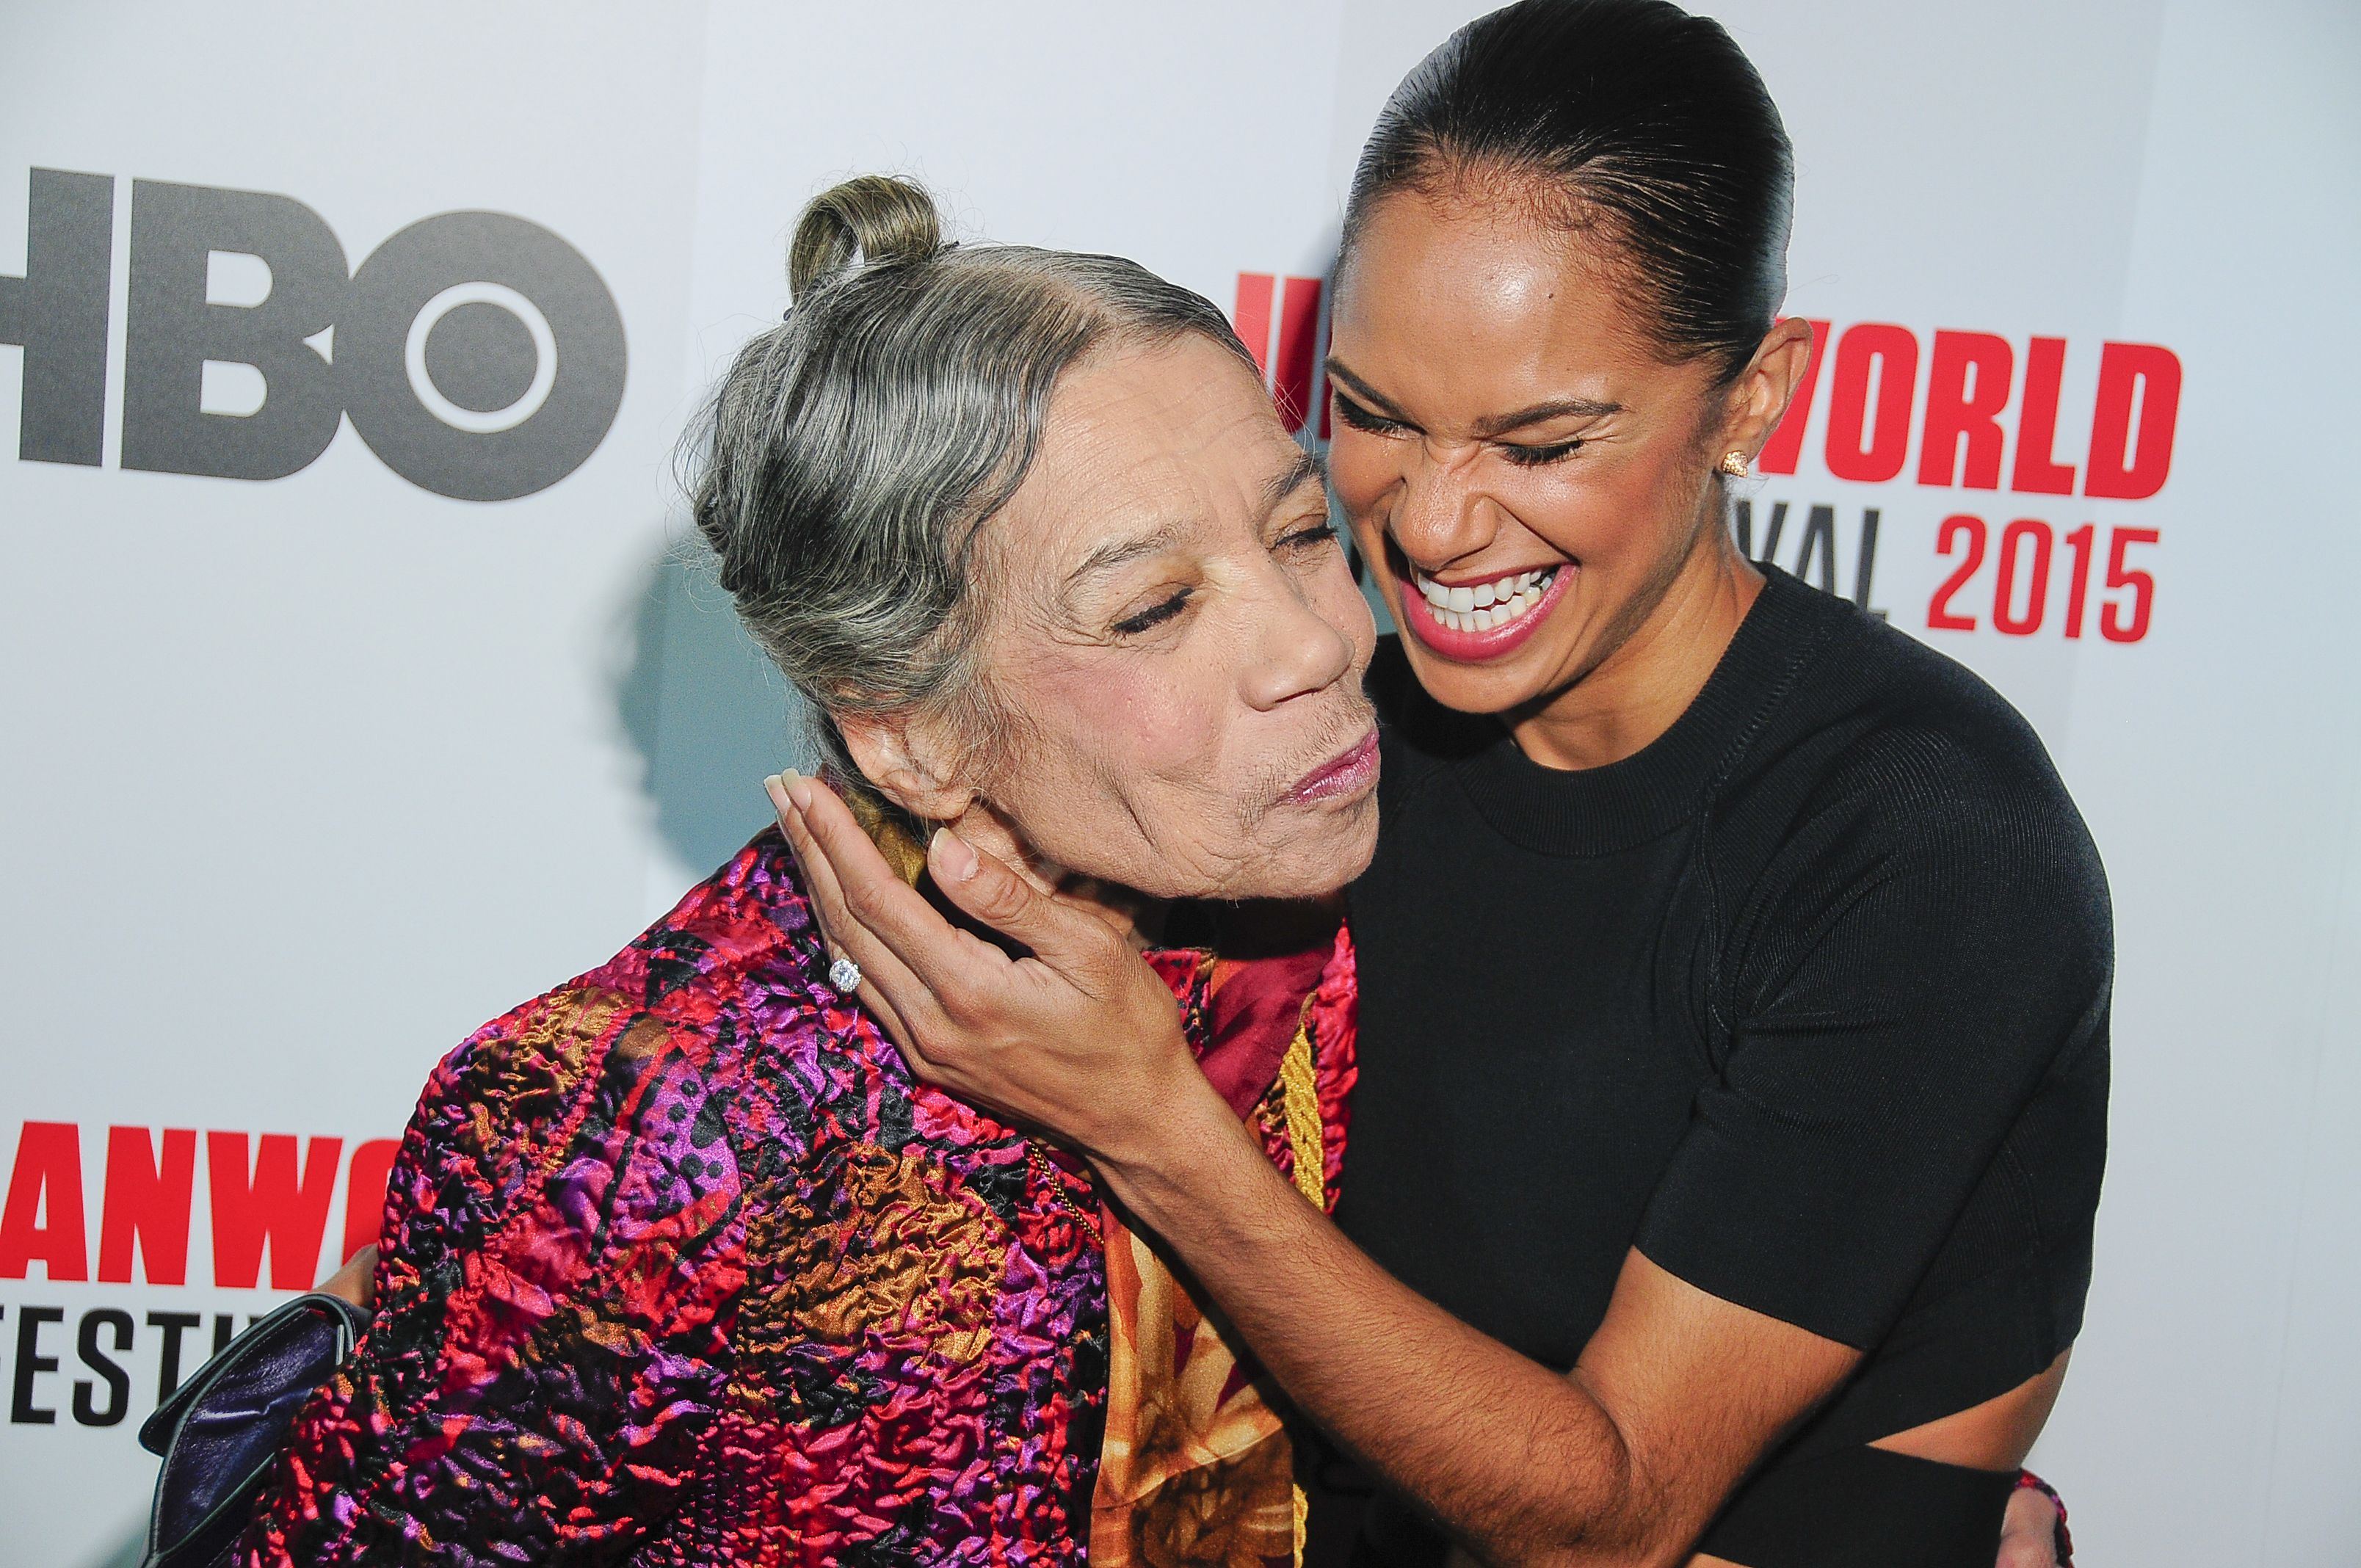 Misty Copeland (right) and Raven Wilkinson at the Urban World Film Festival in New York, NY, on Sep. 27 2015.